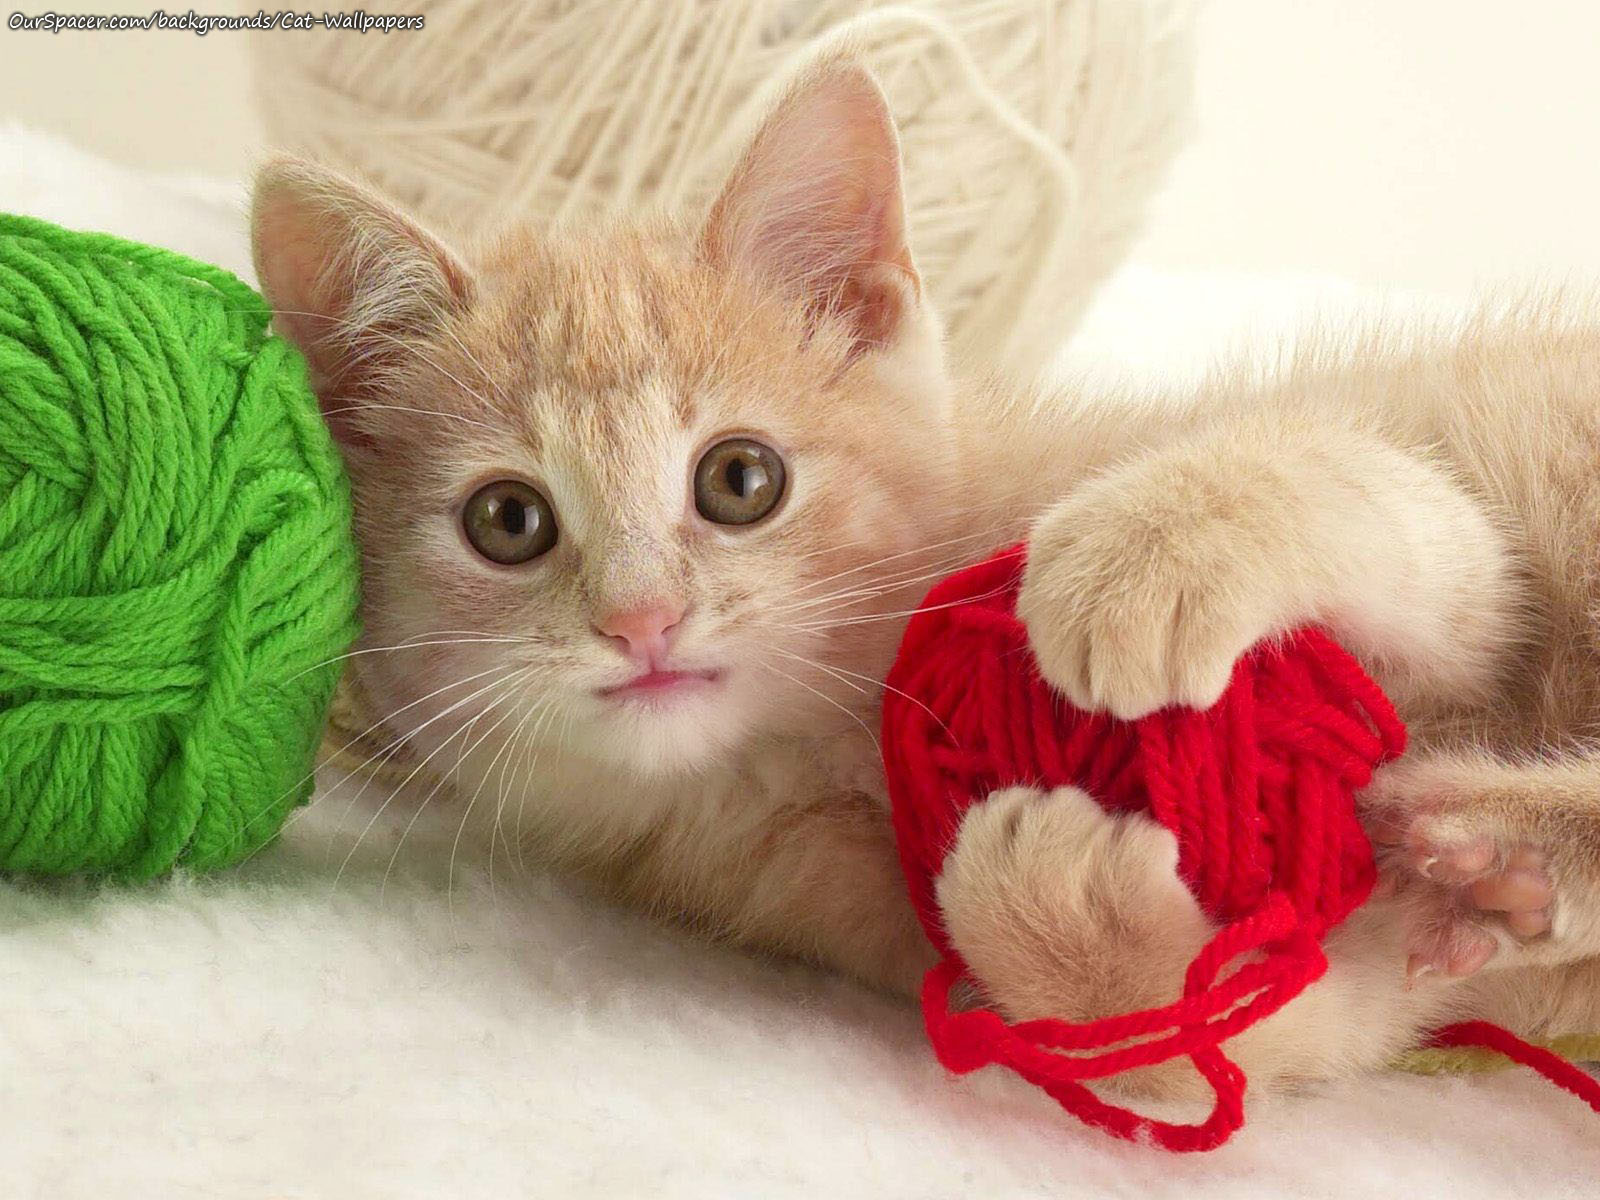 Kitten playing with yarn wallpapers and backgrounds for ...